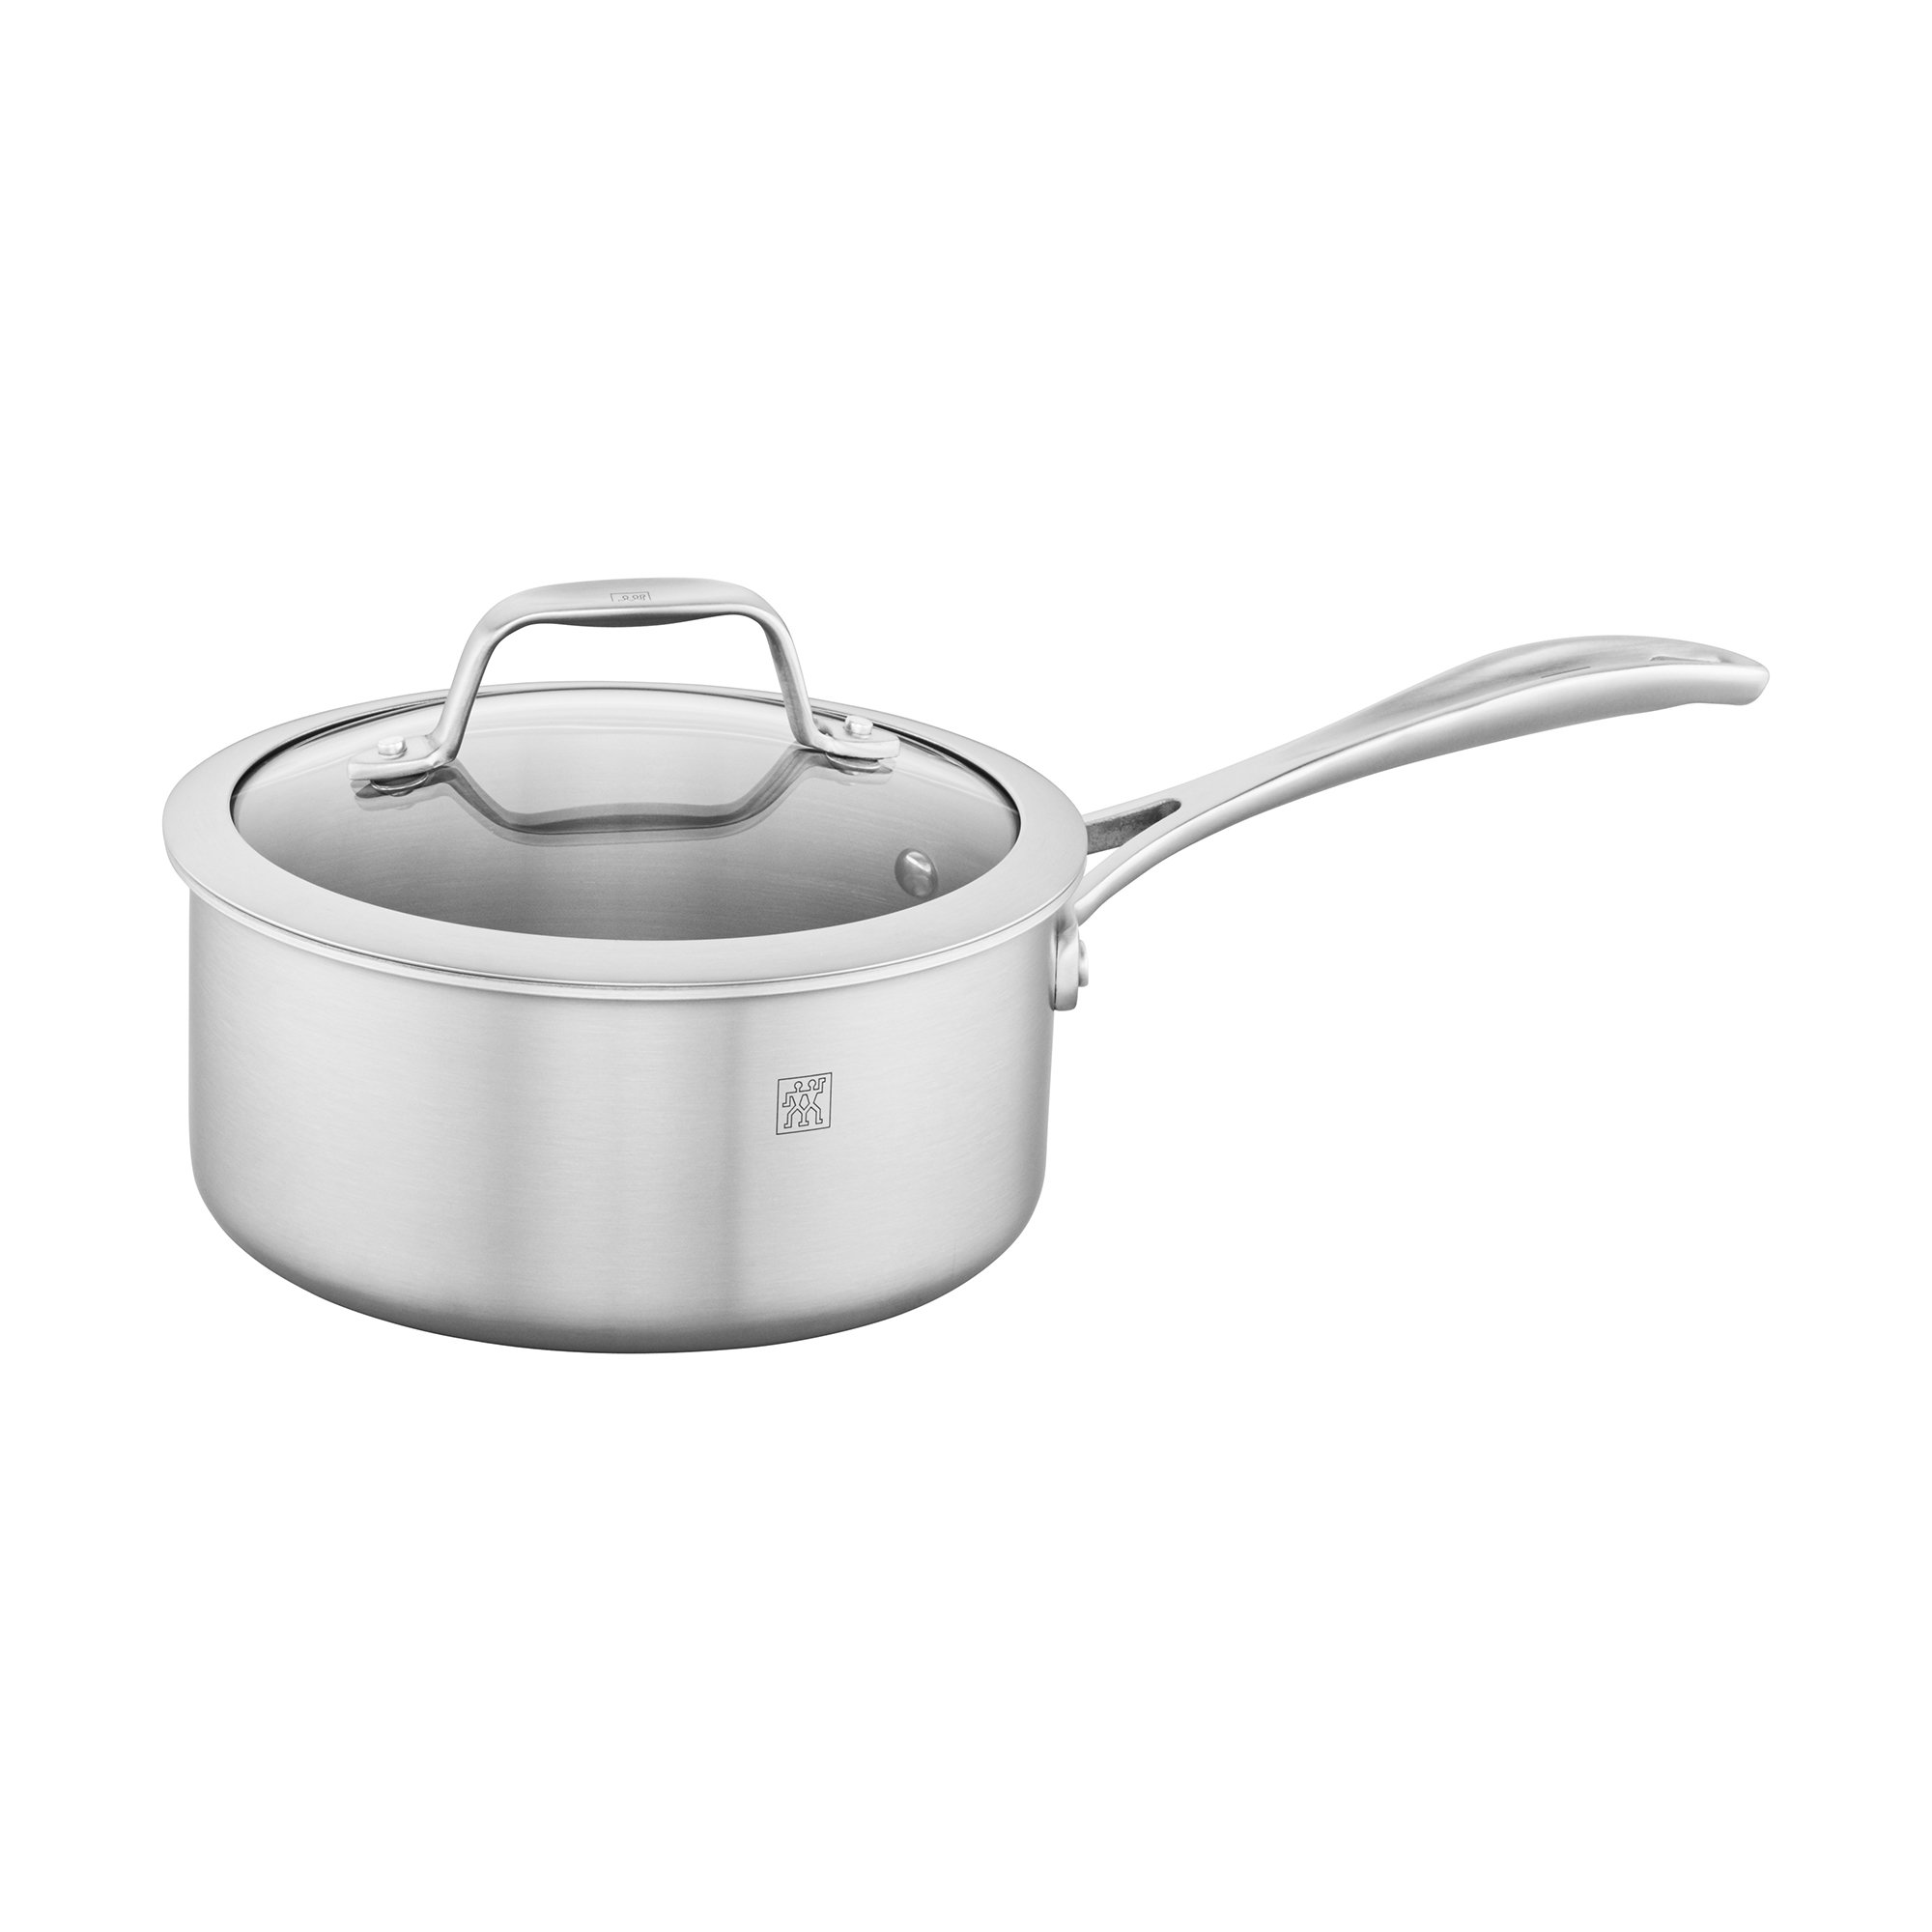 ZWILLING Spirit 3-ply 2-qt Stainless Steel Saucepan